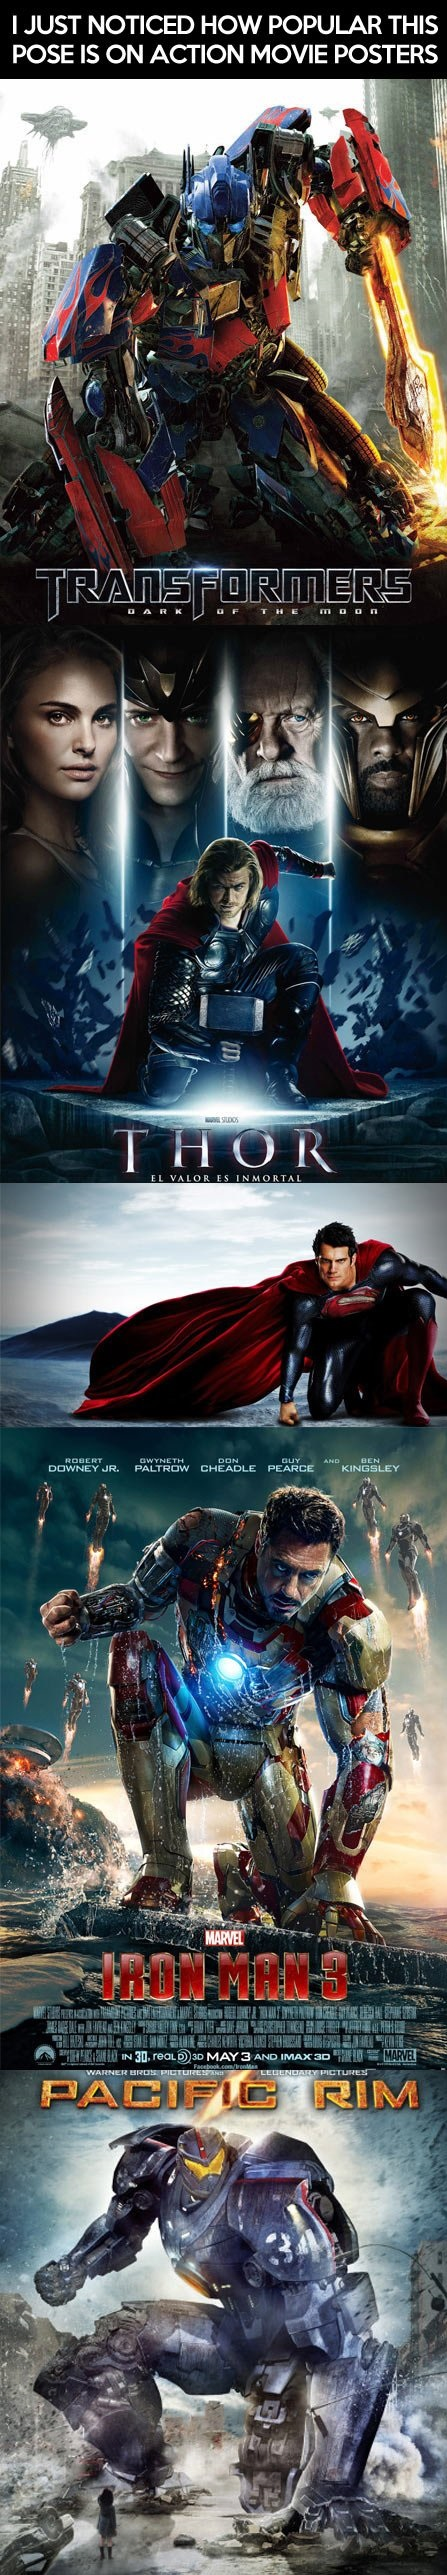 funny-picture-movies-posters-popular